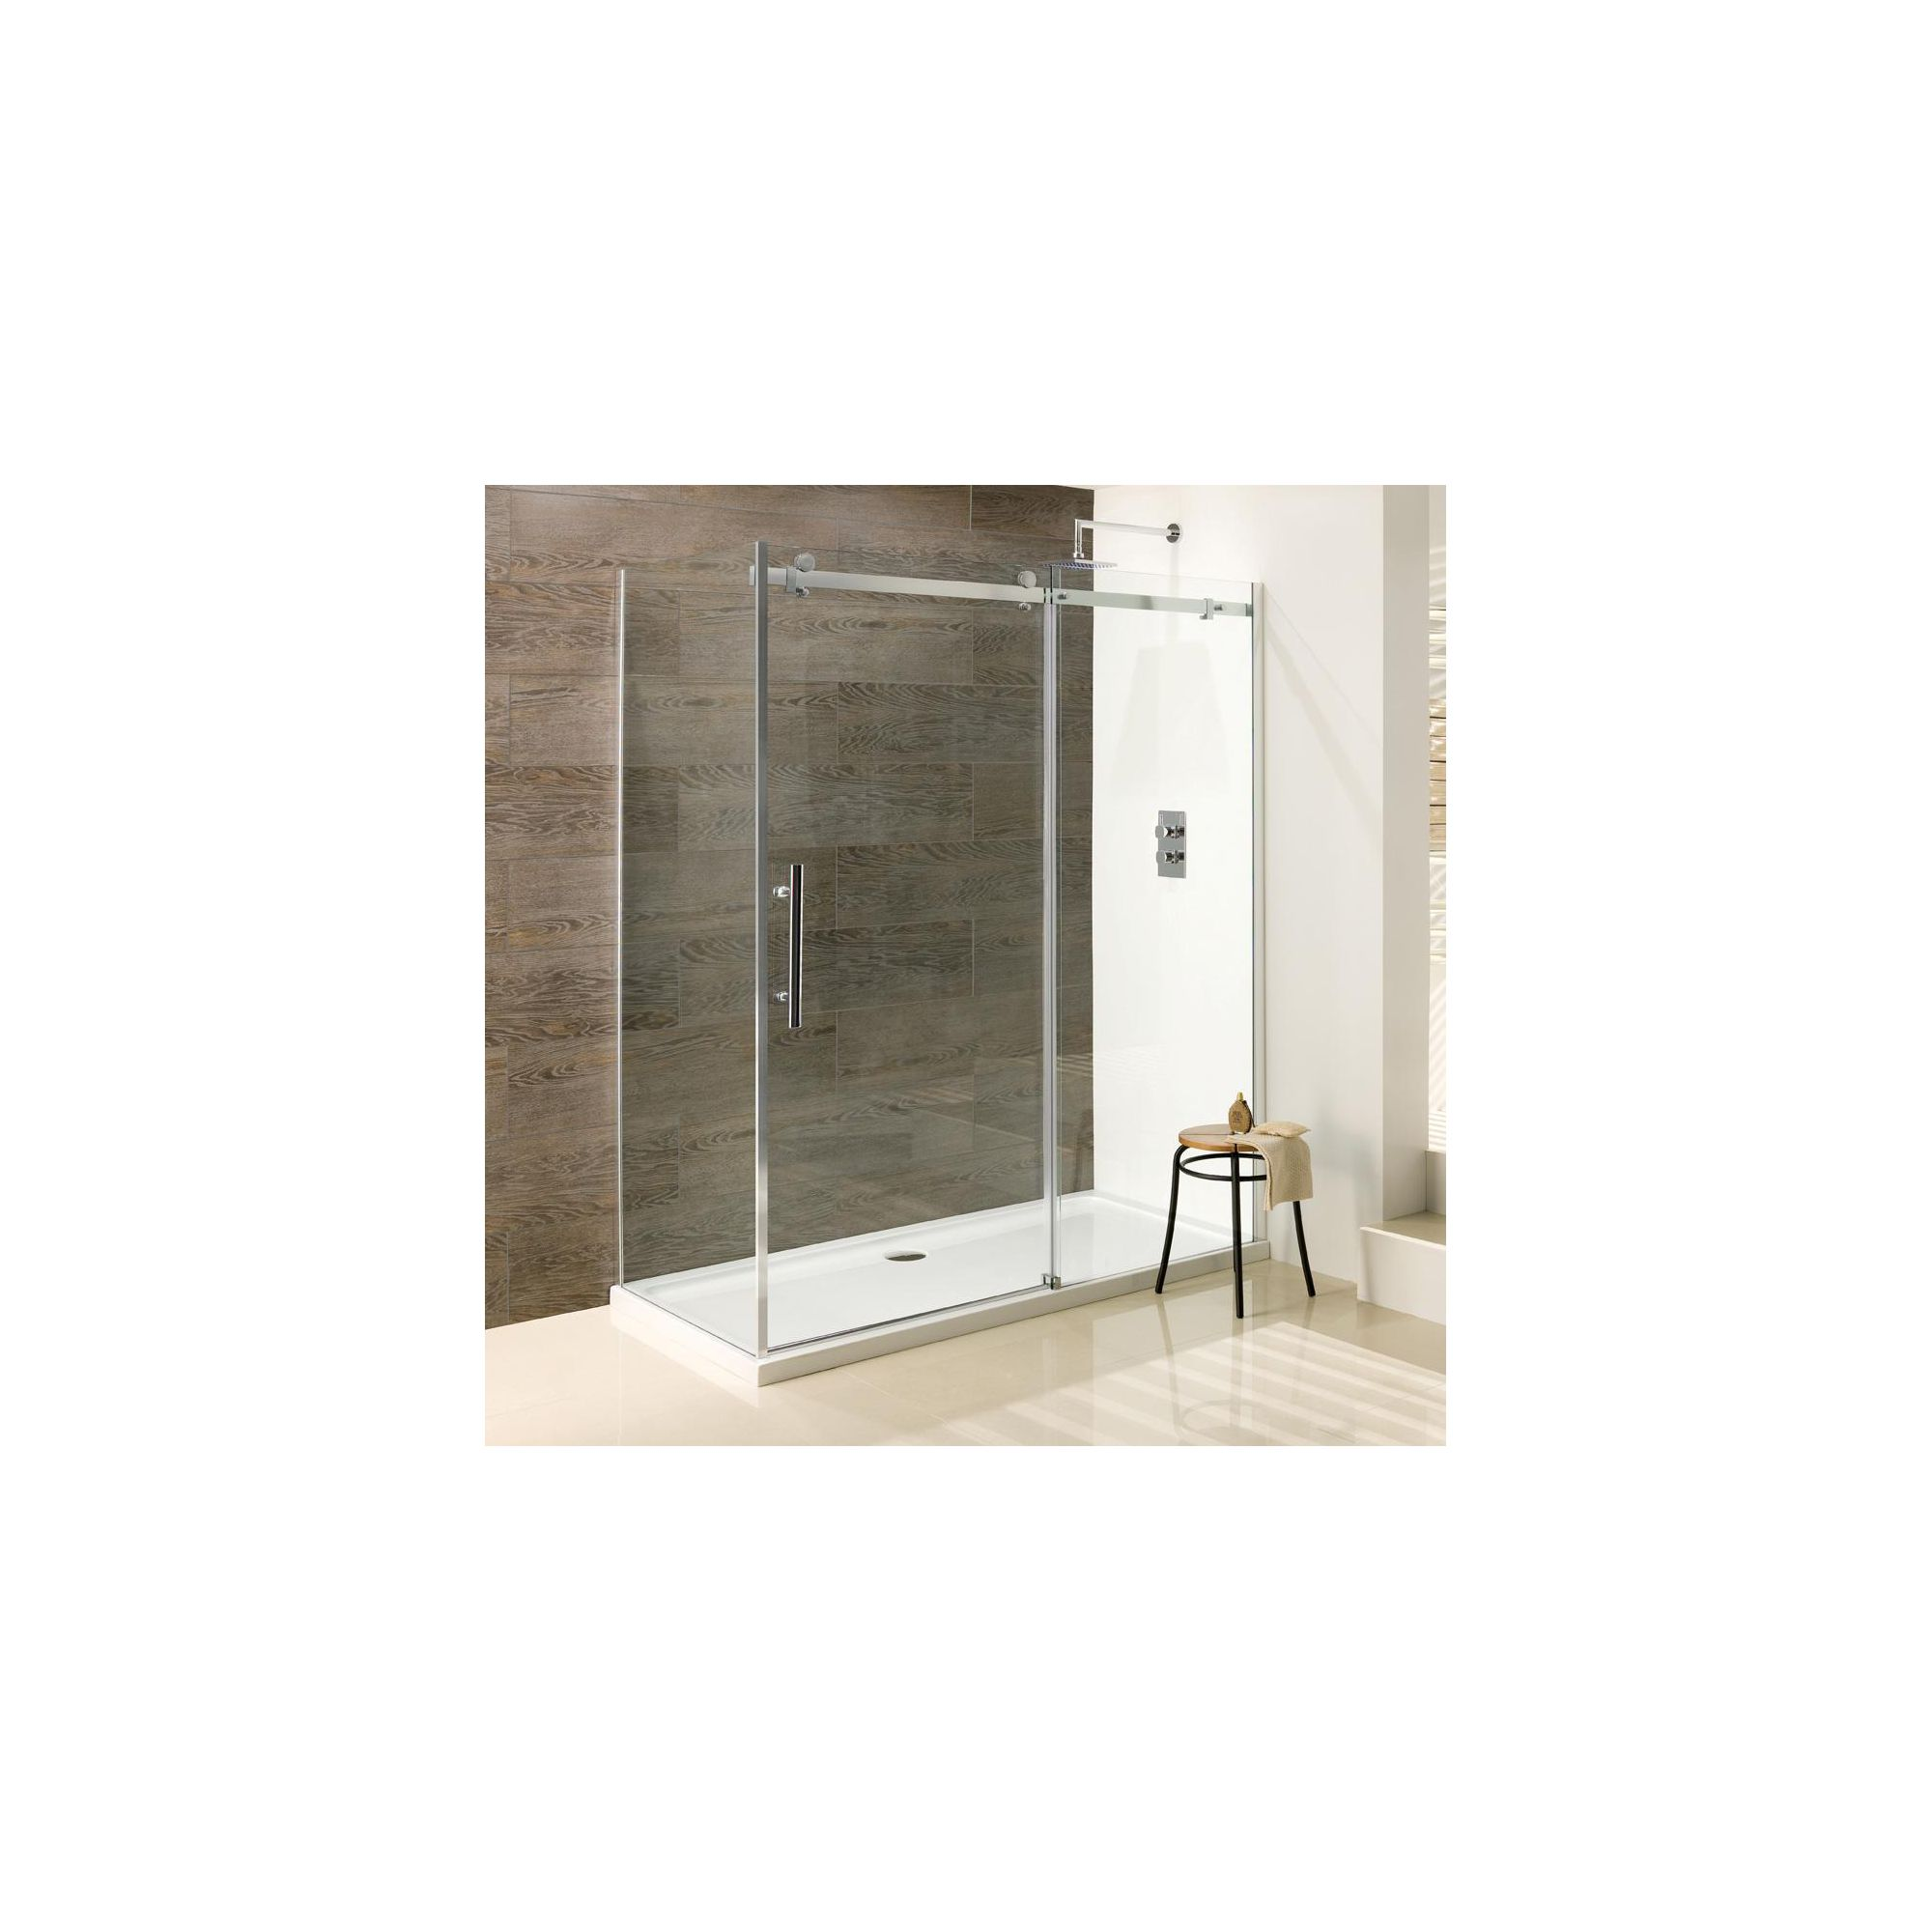 Duchy Deluxe Silver Sliding Door Shower Enclosure with Side Panel 1700mm x 700mm (Complete with Tray), 10mm Glass at Tesco Direct